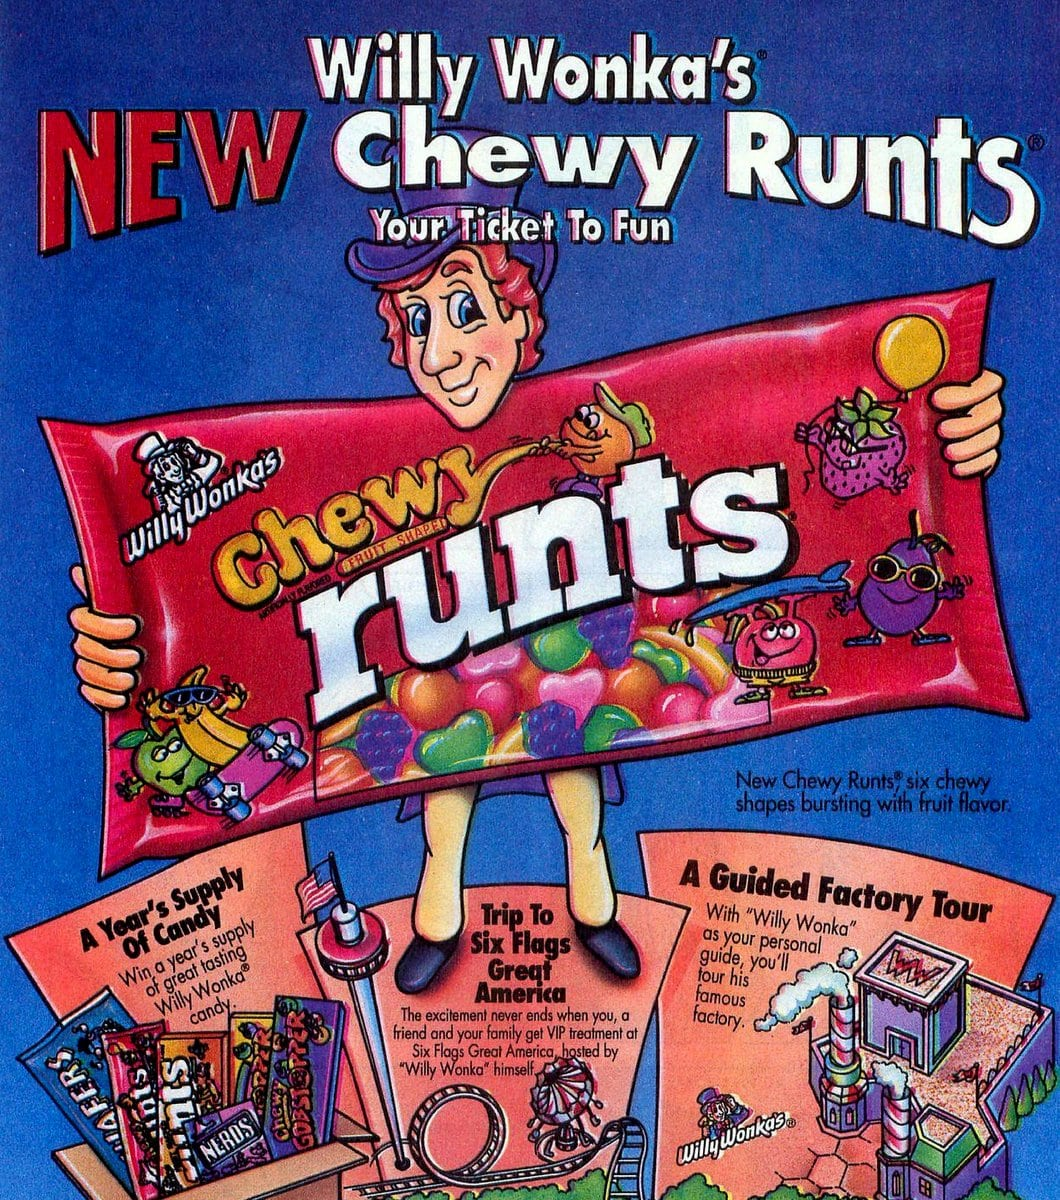 Retro Willy Wonka's Chewy Runts candy (1994)